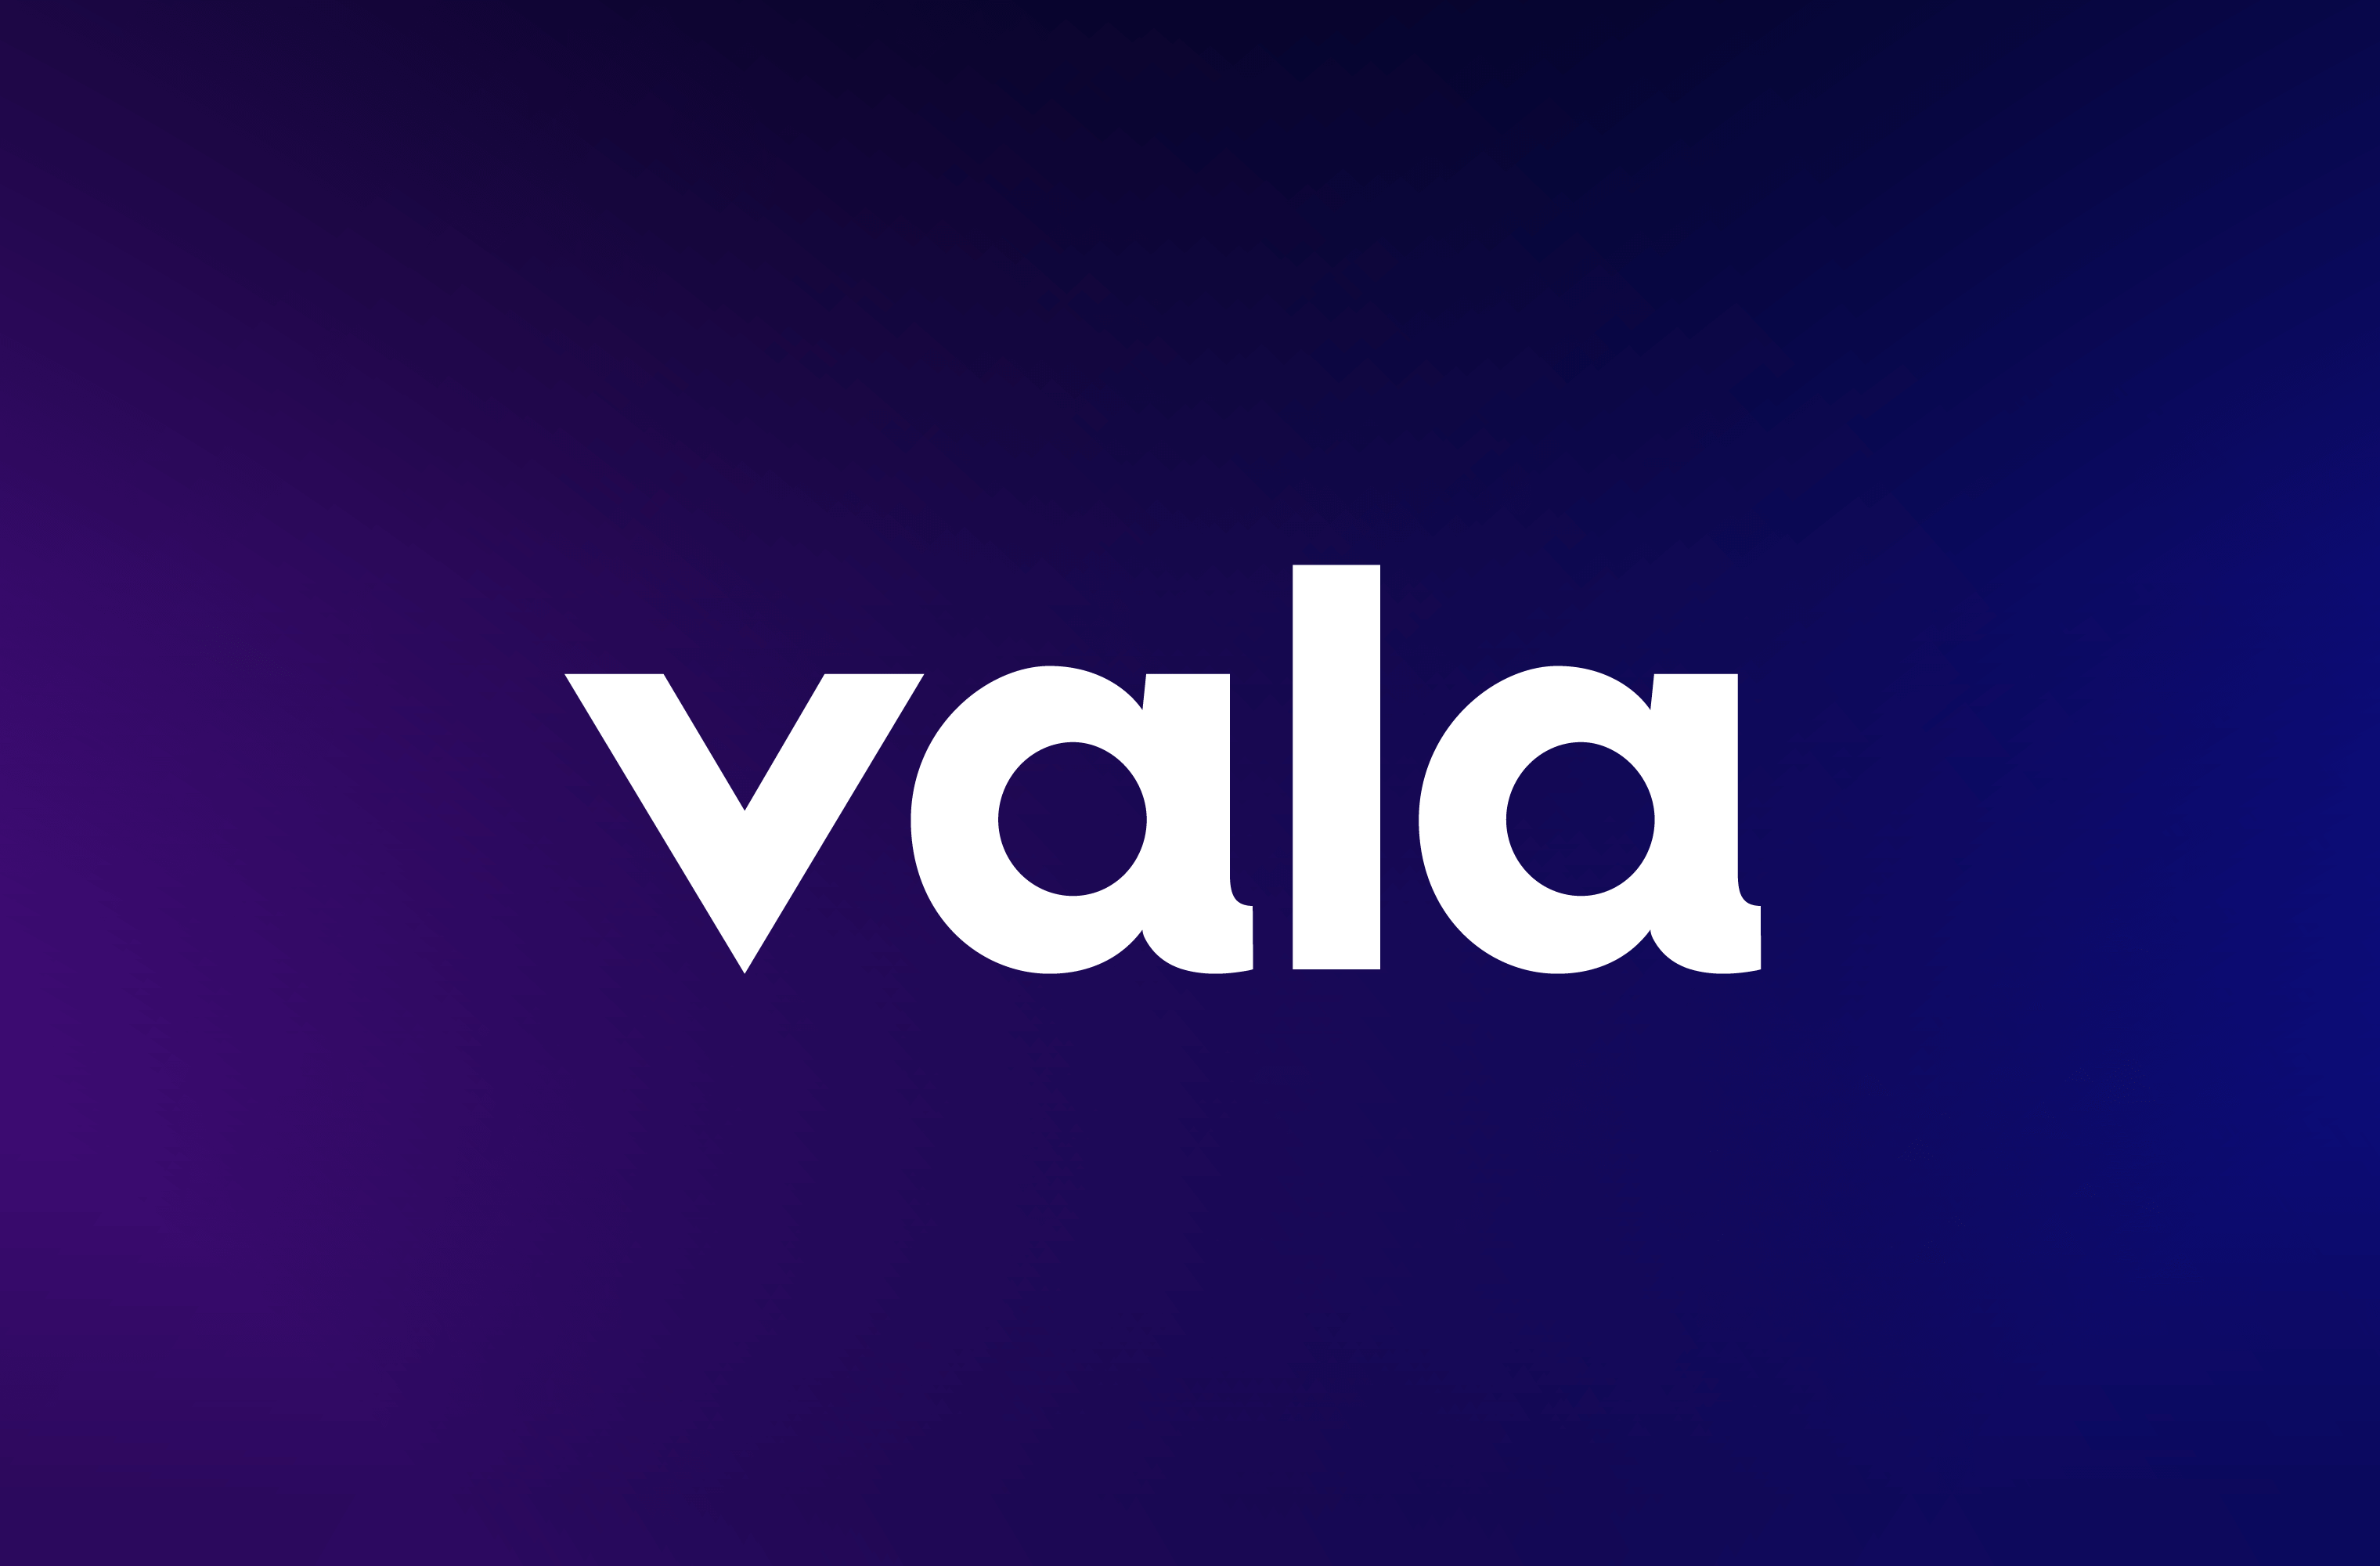 White Vala wordmark on a deep purple and blue gradient background